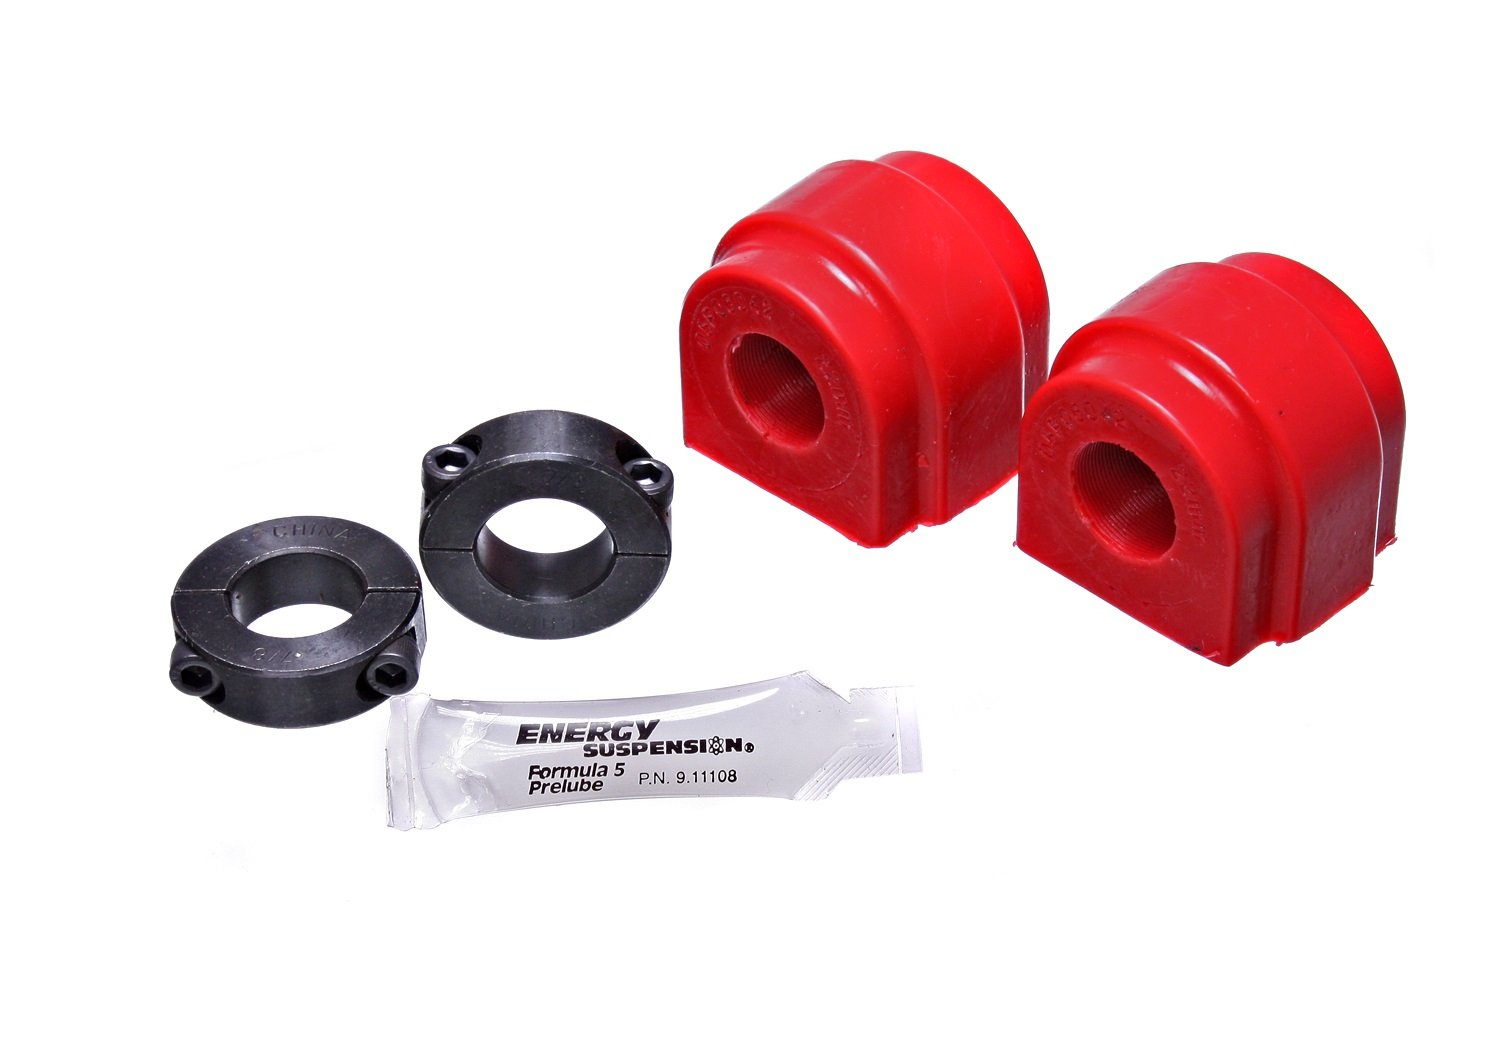 Energy Suspension 11.5116R Vordere Sway Bar Bushing (22mm Set) von Energy Suspension